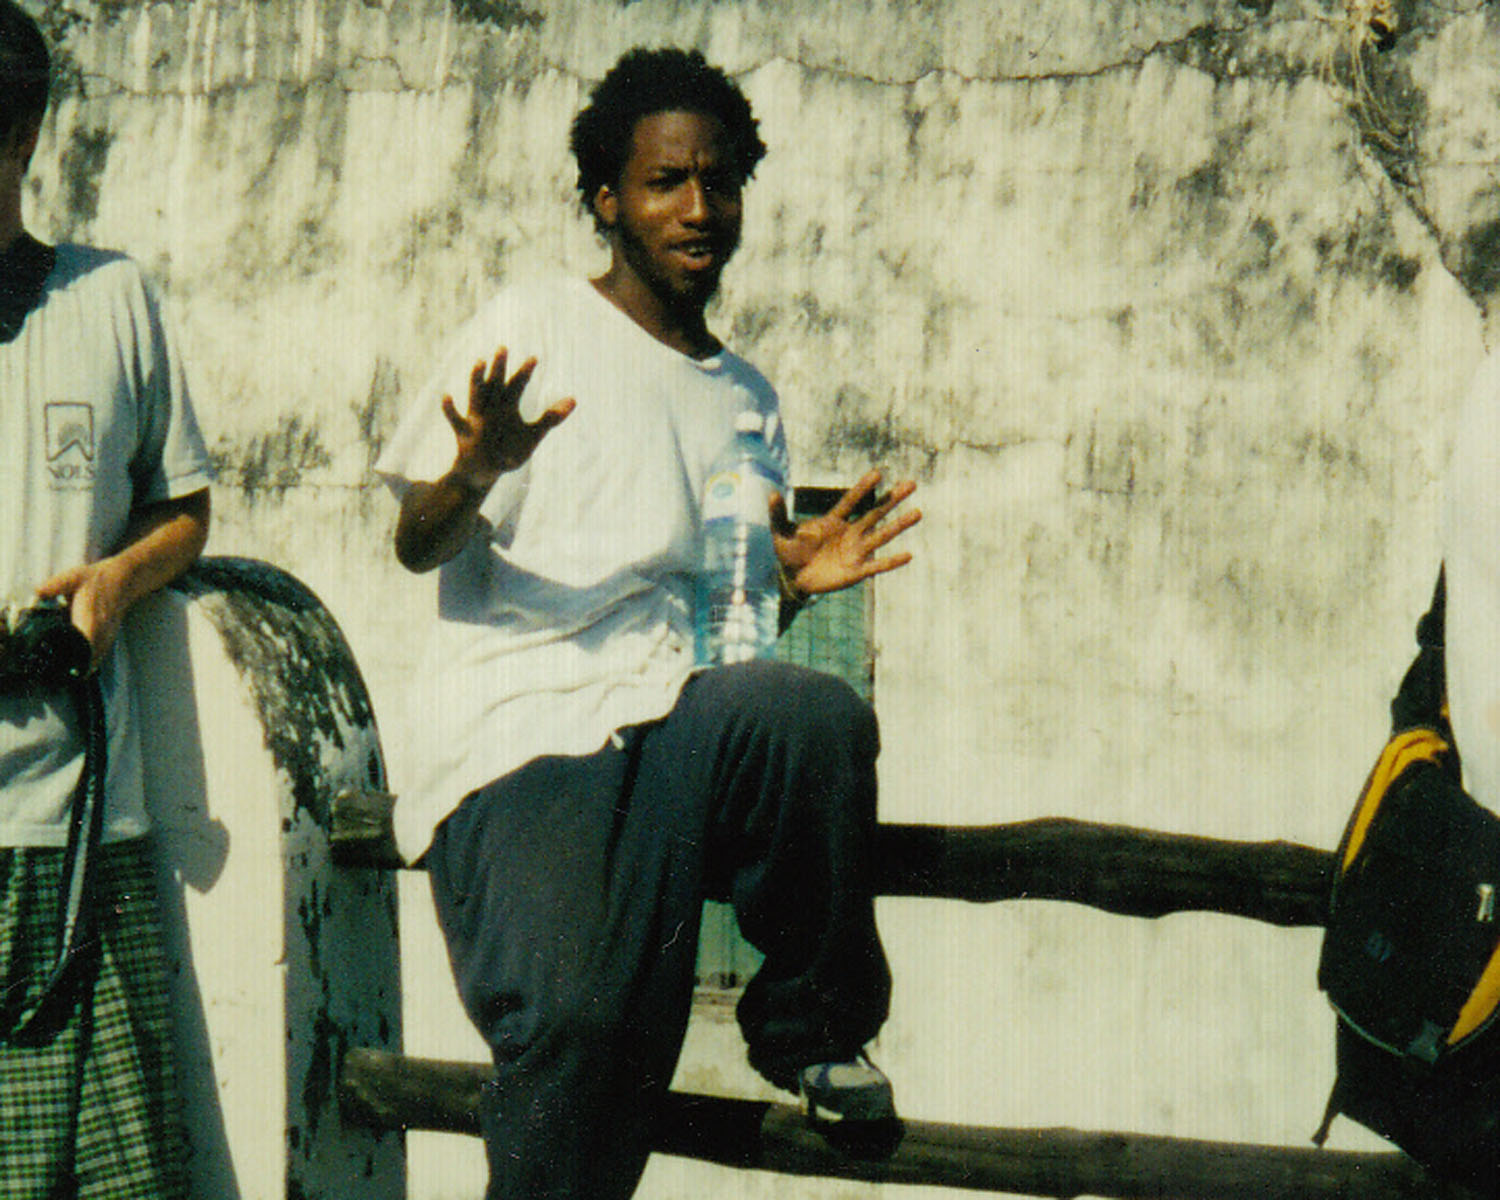 Jamal Bradley (pictured above) first moved to Kenya as a Peace Corps volunteer and eventually moved there permanently.